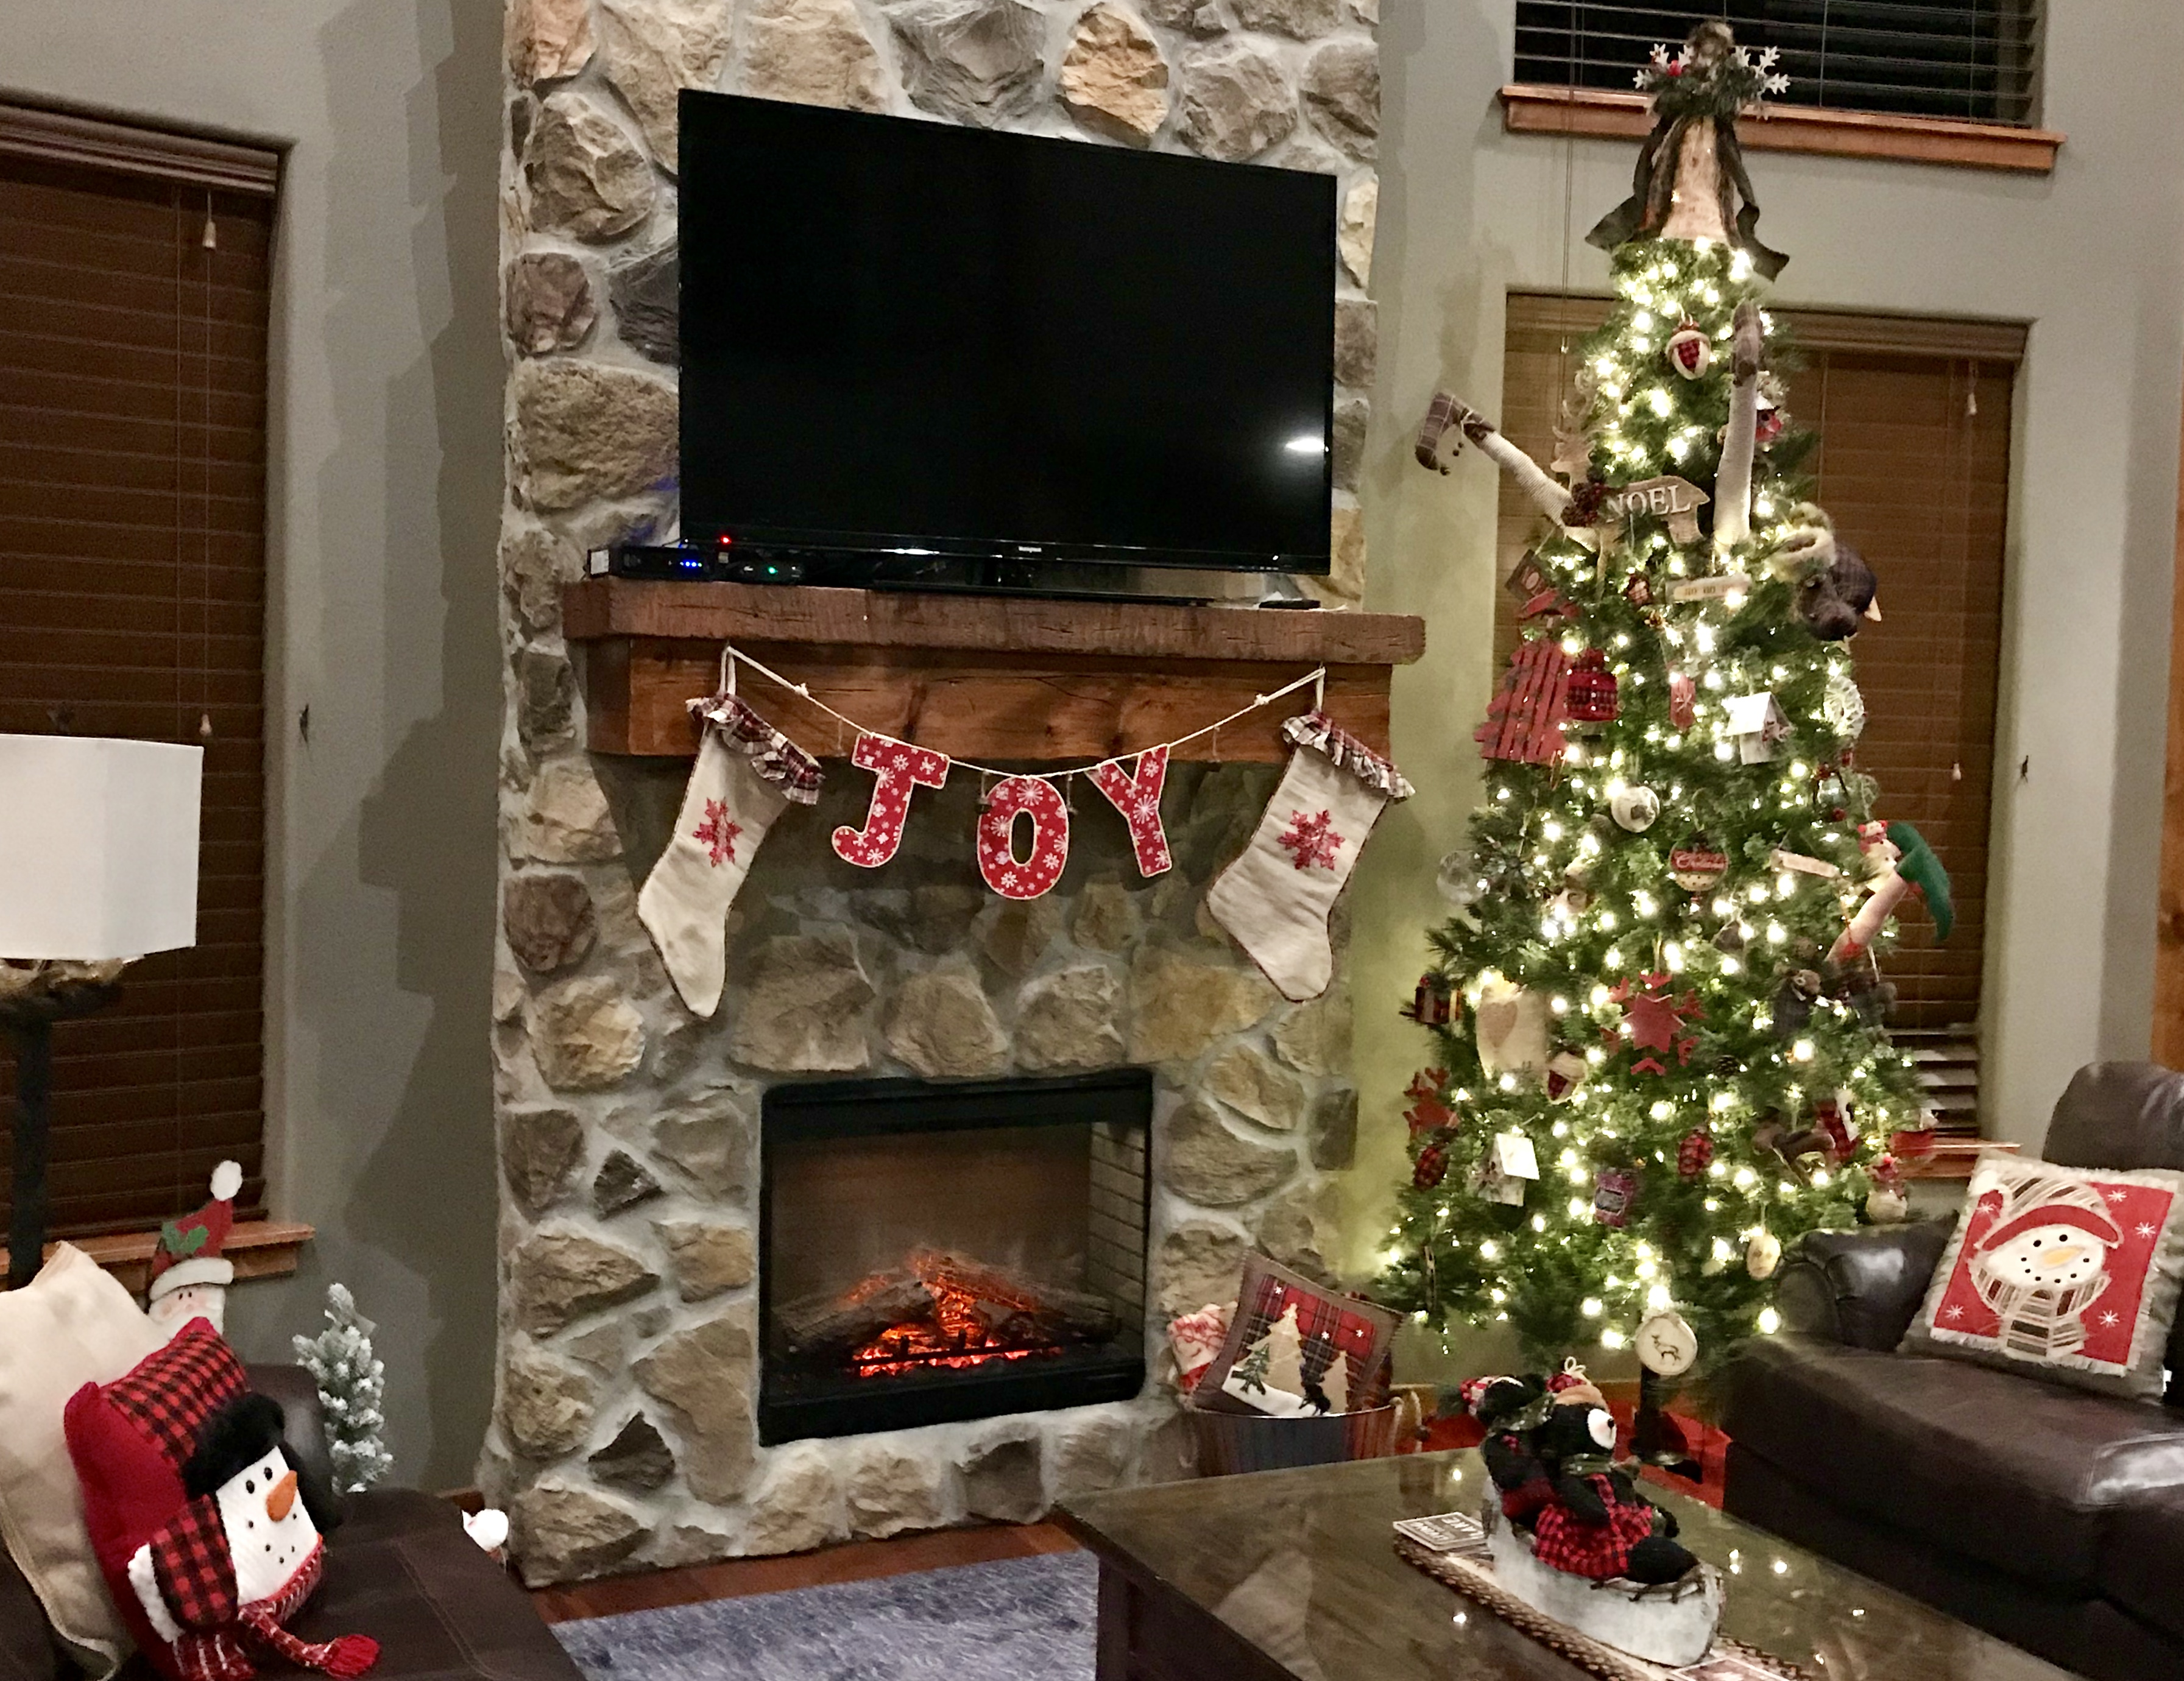 Decorated beautifully for Christmas